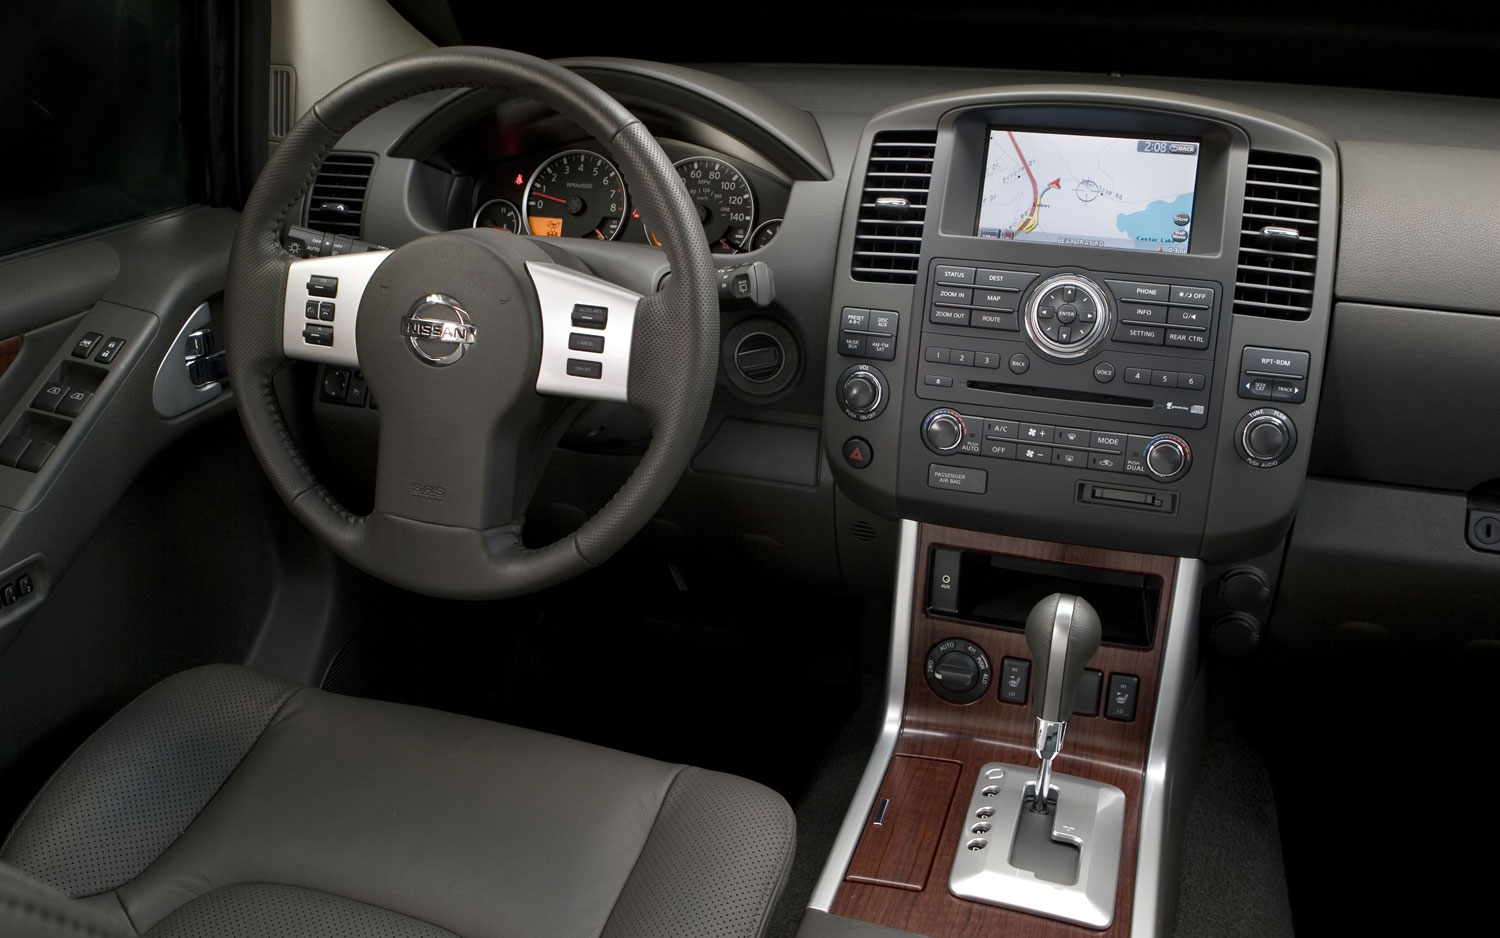 2013 Nissan Pathfinder Interior Revealed